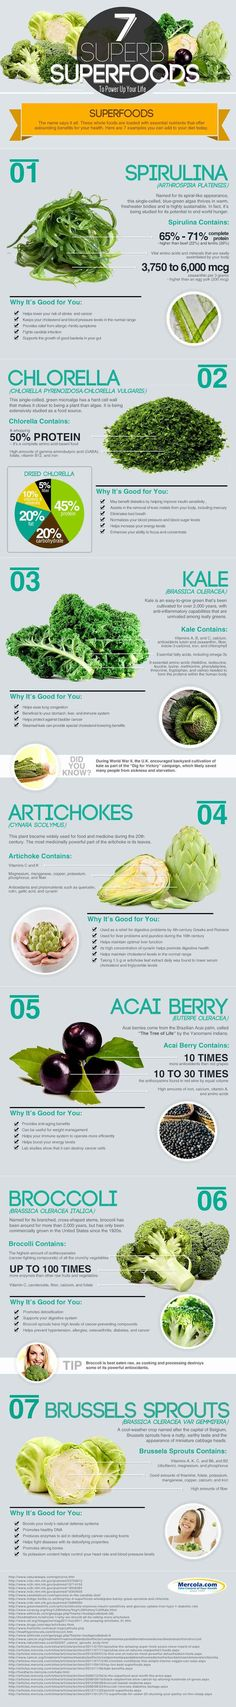 """Check out the """"7 Superb Superfoods to Power Up Your Life"""" infographic and discover some of the delicious secrets to optimal health and longevity. http://www.mercola.com/infographics/superfoods.htm"""